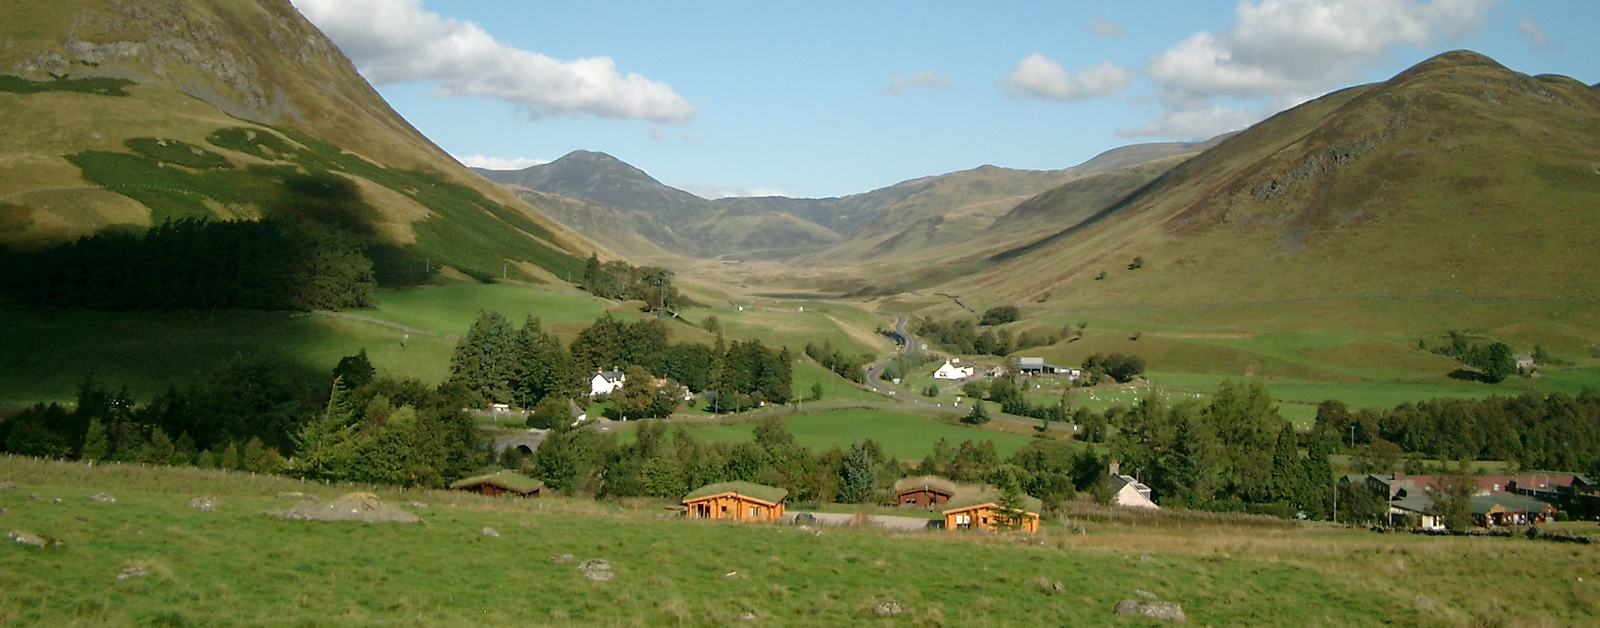 The Log Cabins at Glenbeag